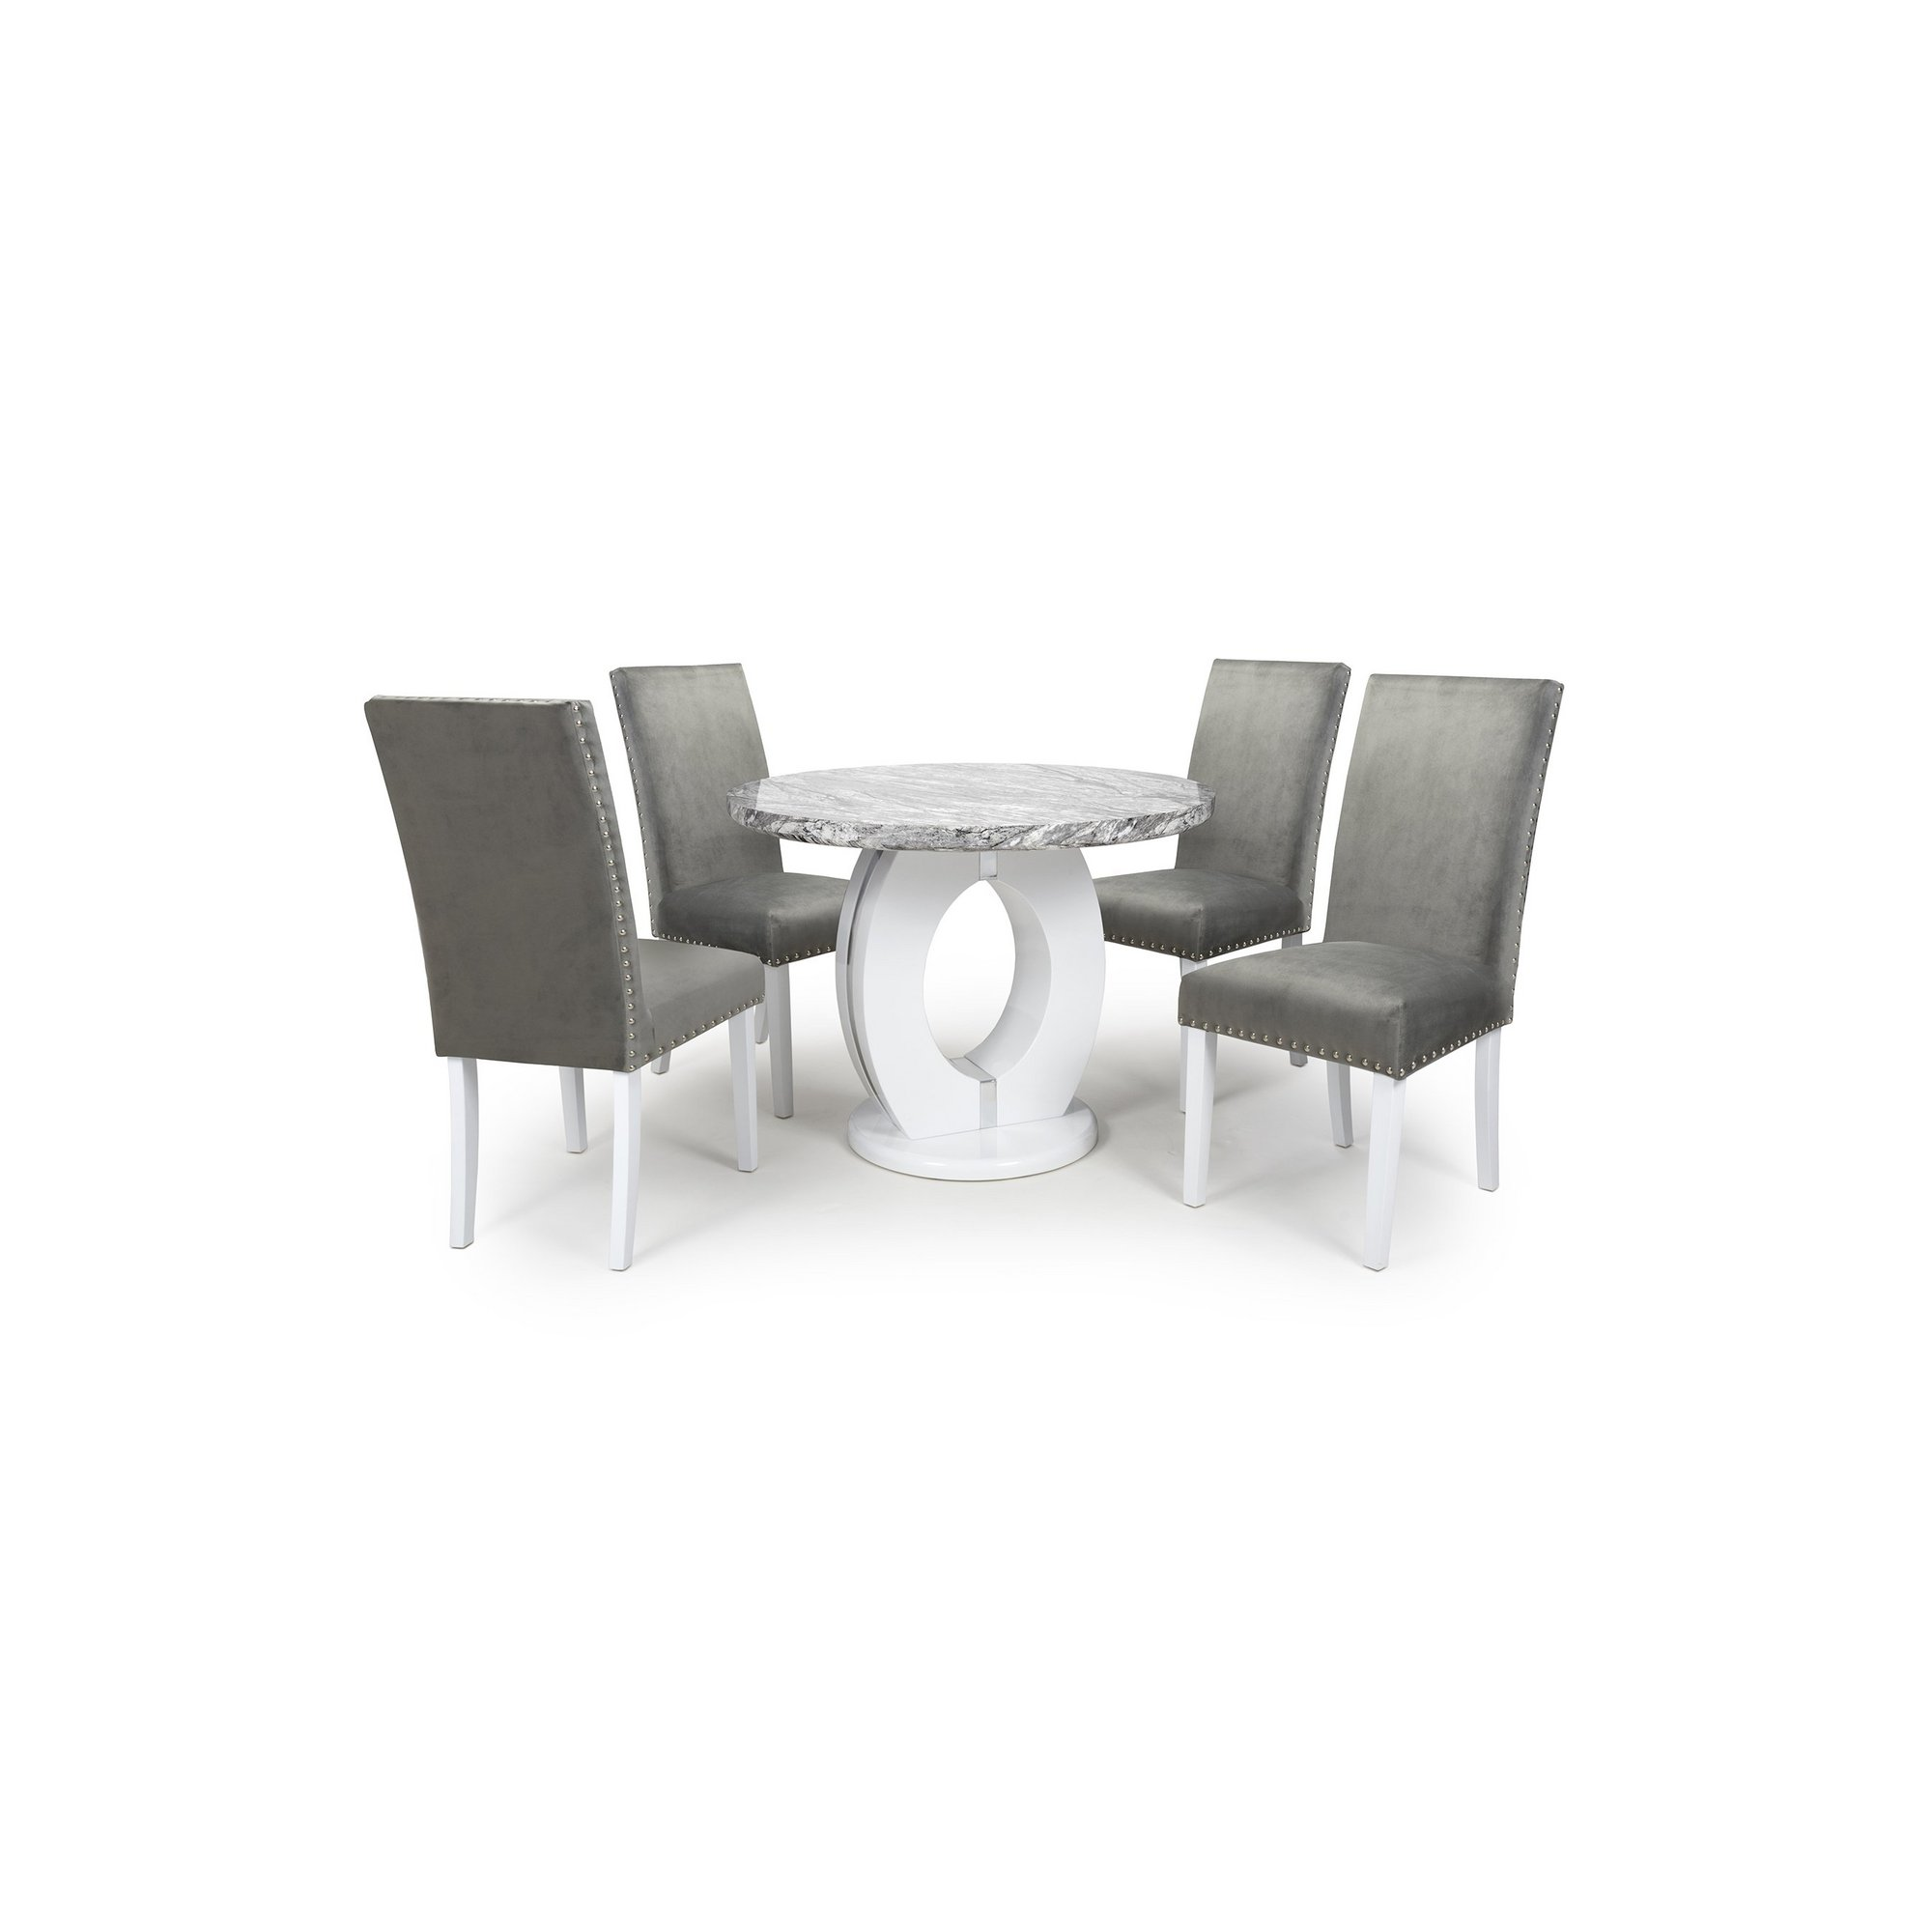 Image of Grey Marble Effect 5 Piece Round Dining Set with Grey Brushed Vel...